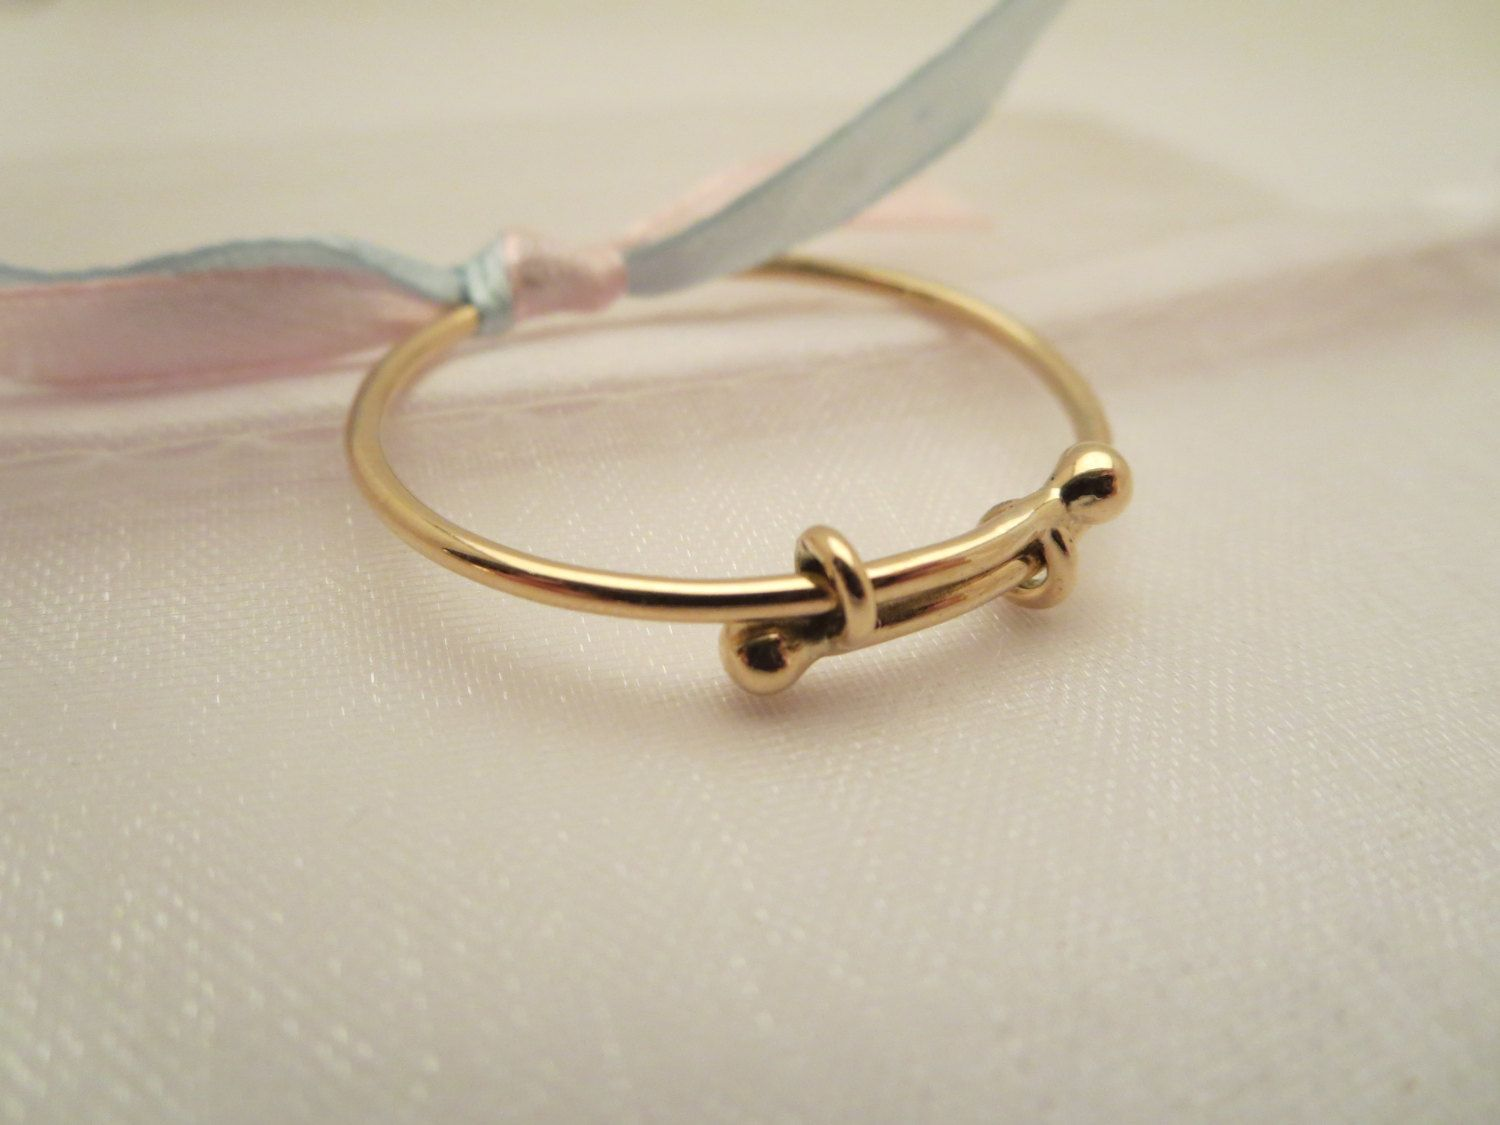 Adorable expandable baby bangle bracelet in solid 14k gold ...